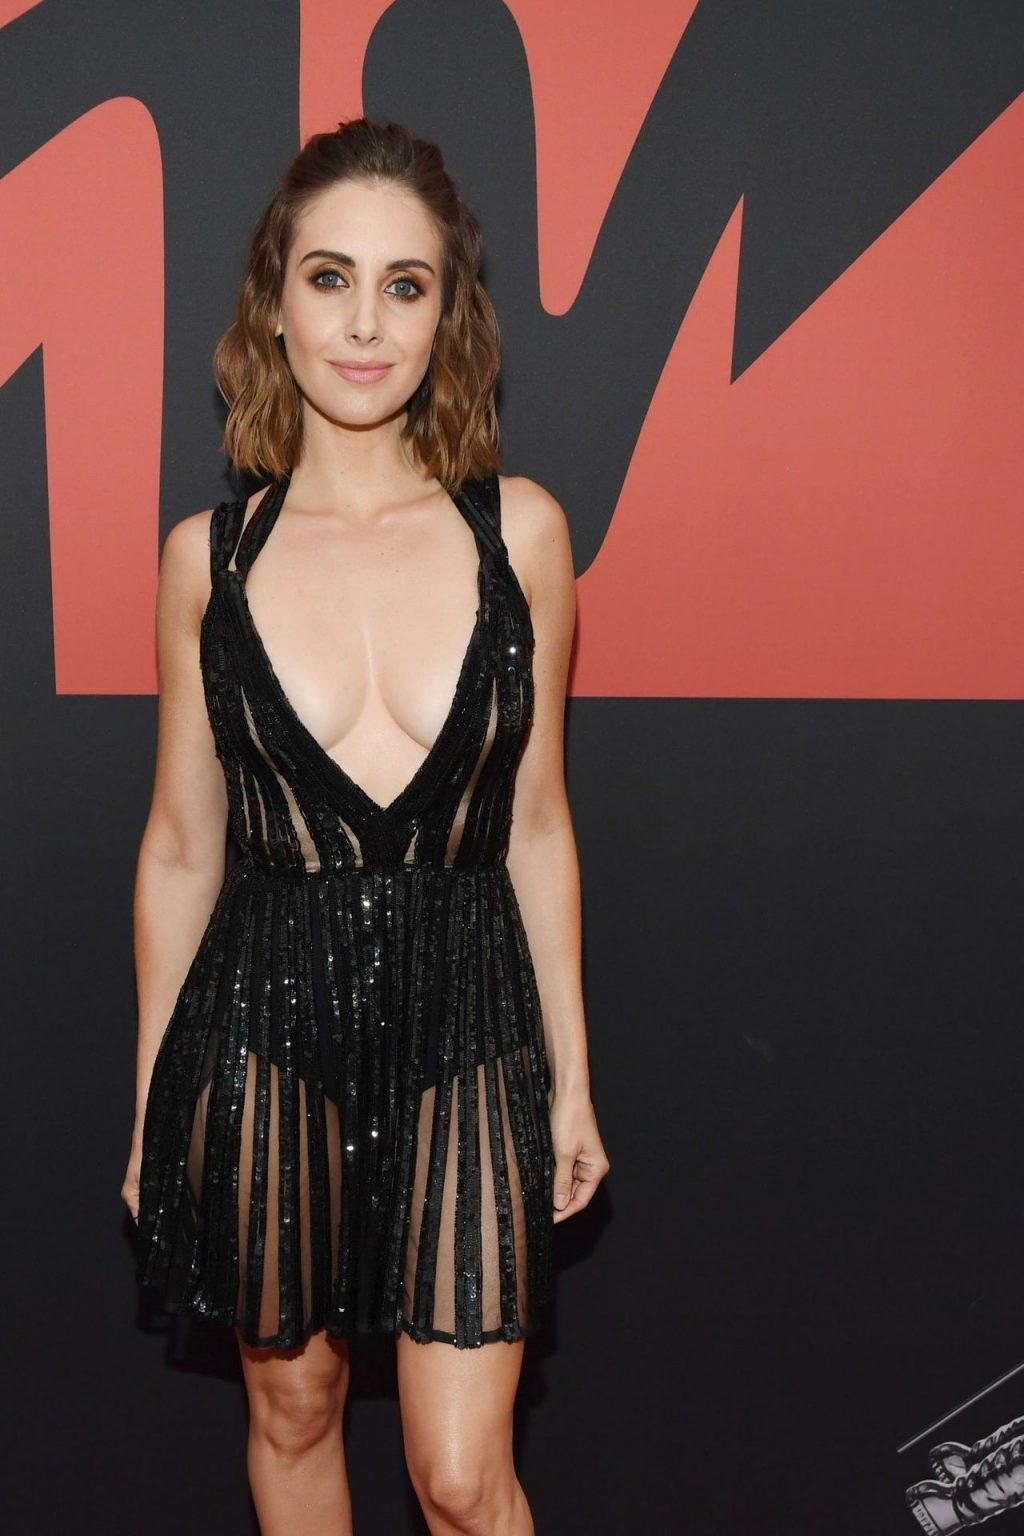 Alison Brie Cleavage girlfappening.com 1